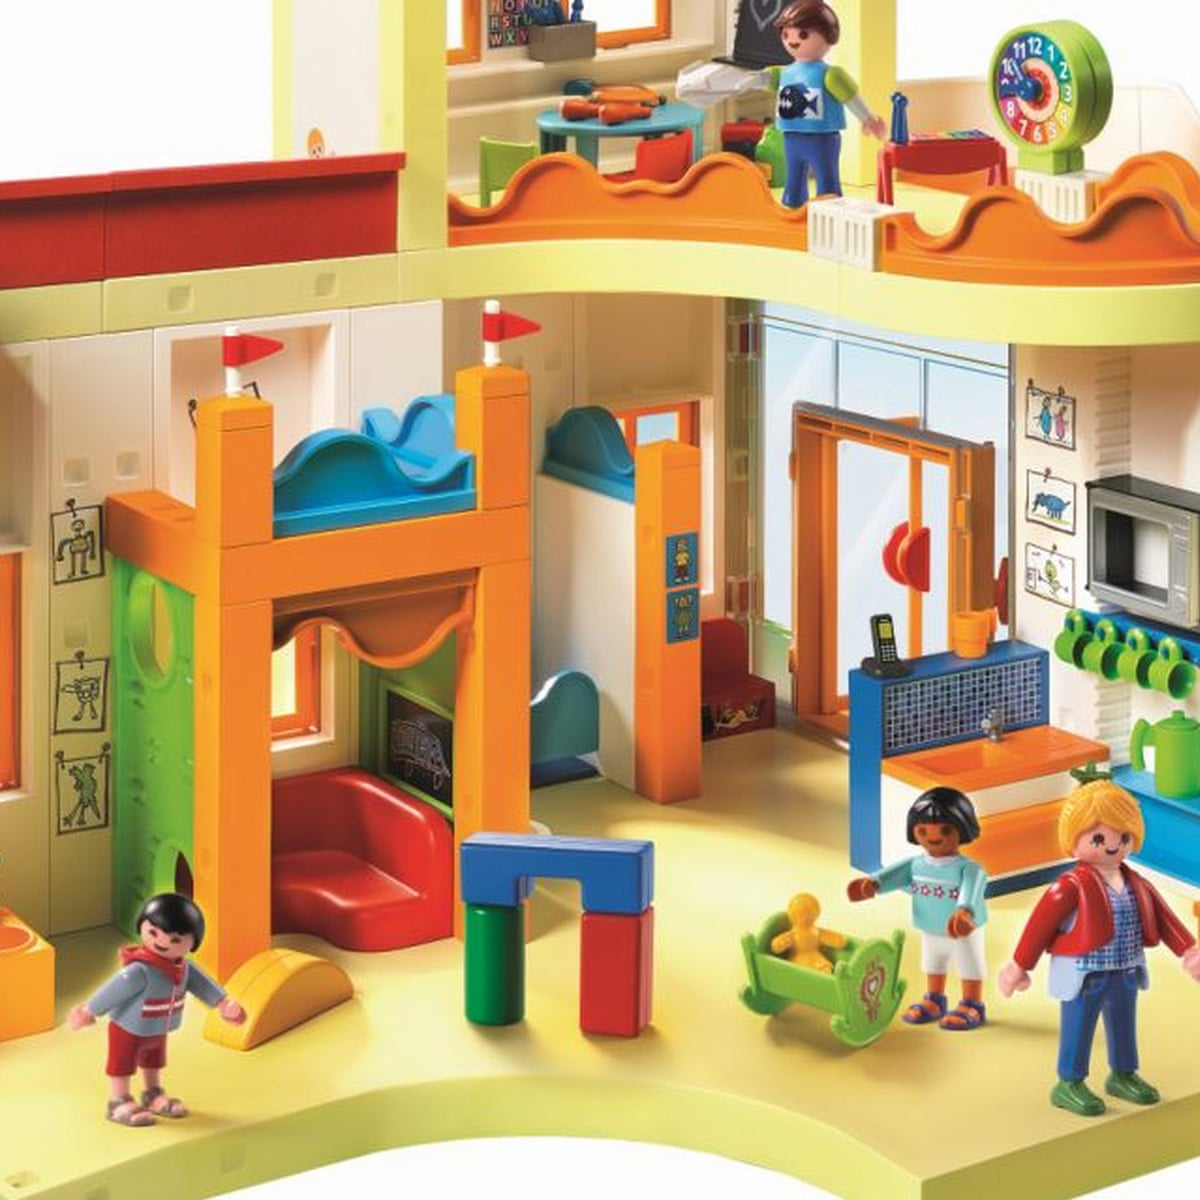 Playmobil accused of 'perpetuating ugly stereotypes' by UK parent | World  news | The Guardian